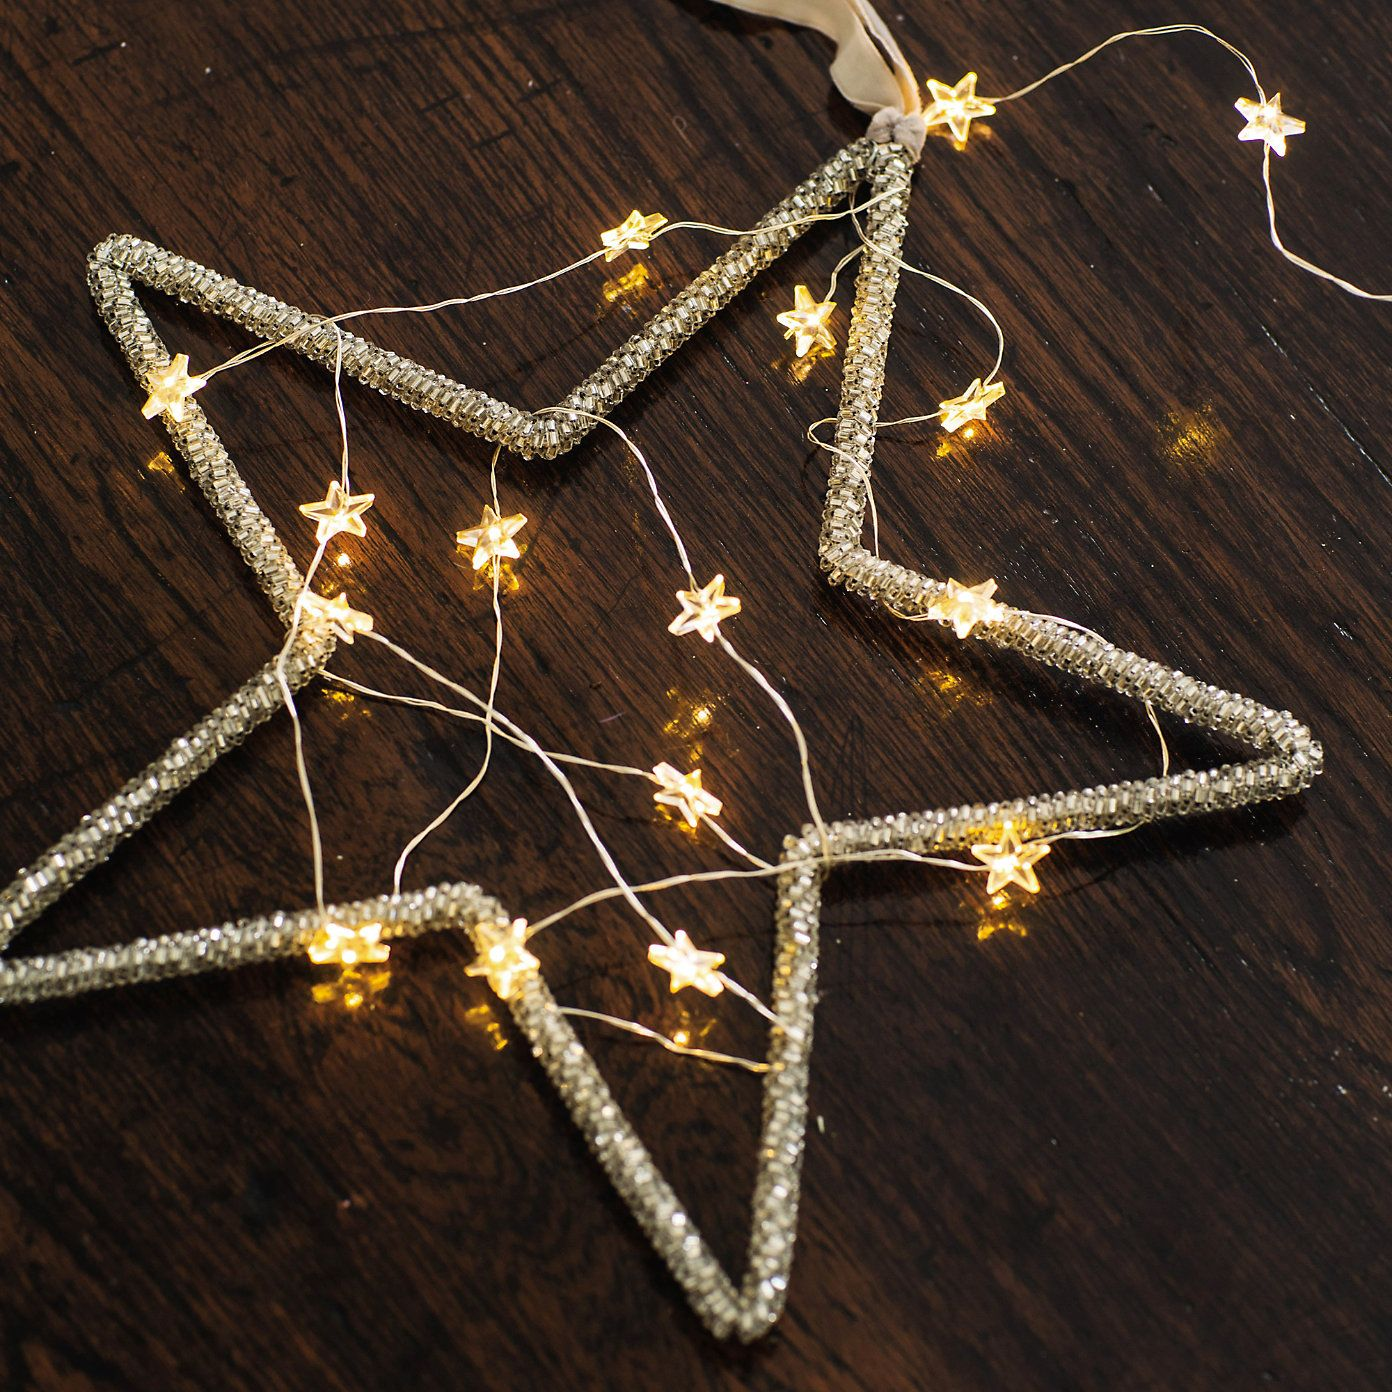 Star #Fairylights Wrapped In A Star Shaped Frame This Is